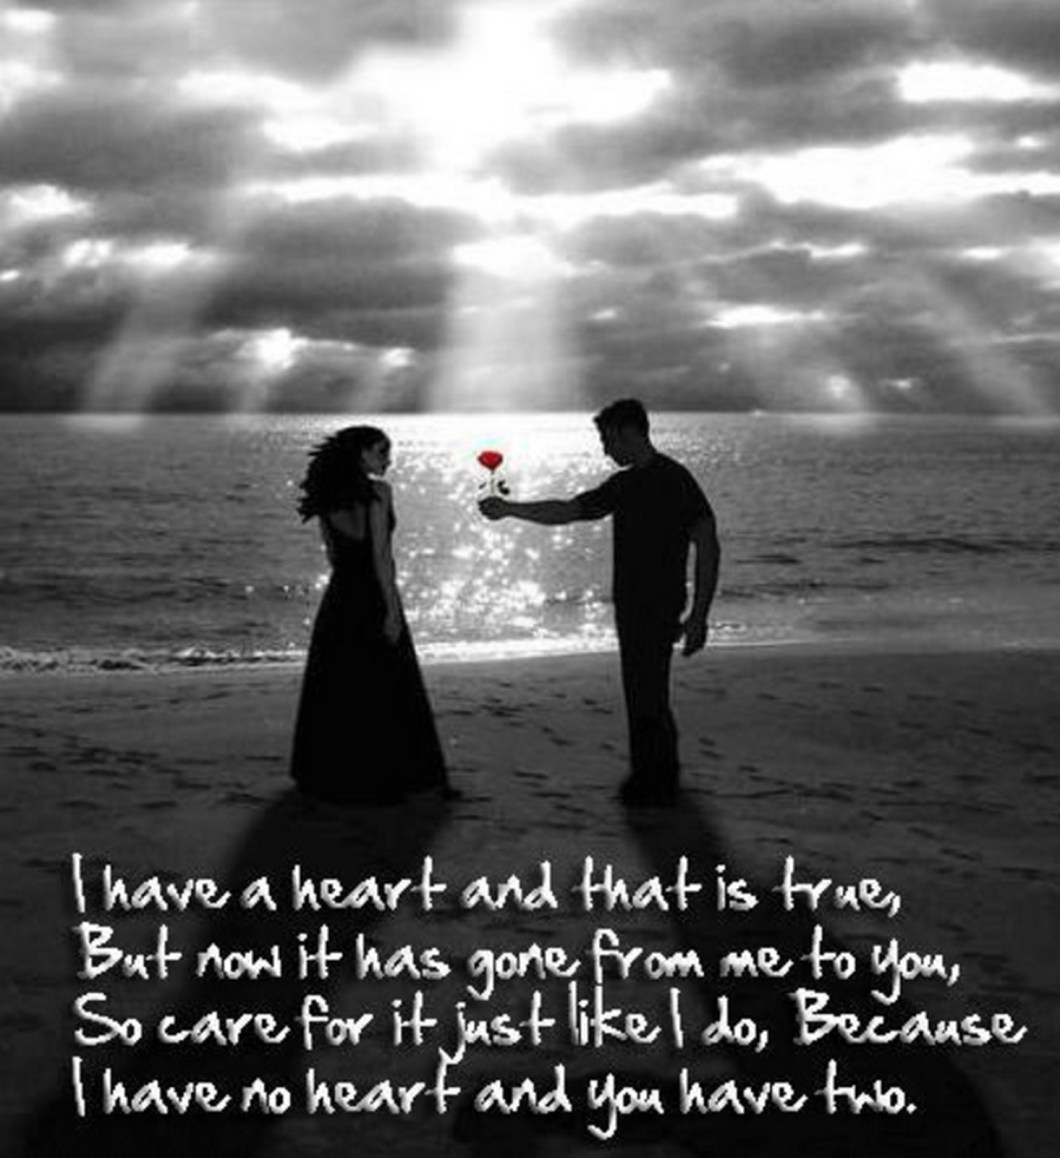 """55 Romantic Quotes - """"I have a heart and that is true, But now it has gone from me to you, So care for it just like I do, Because I have no heart and you have two."""""""